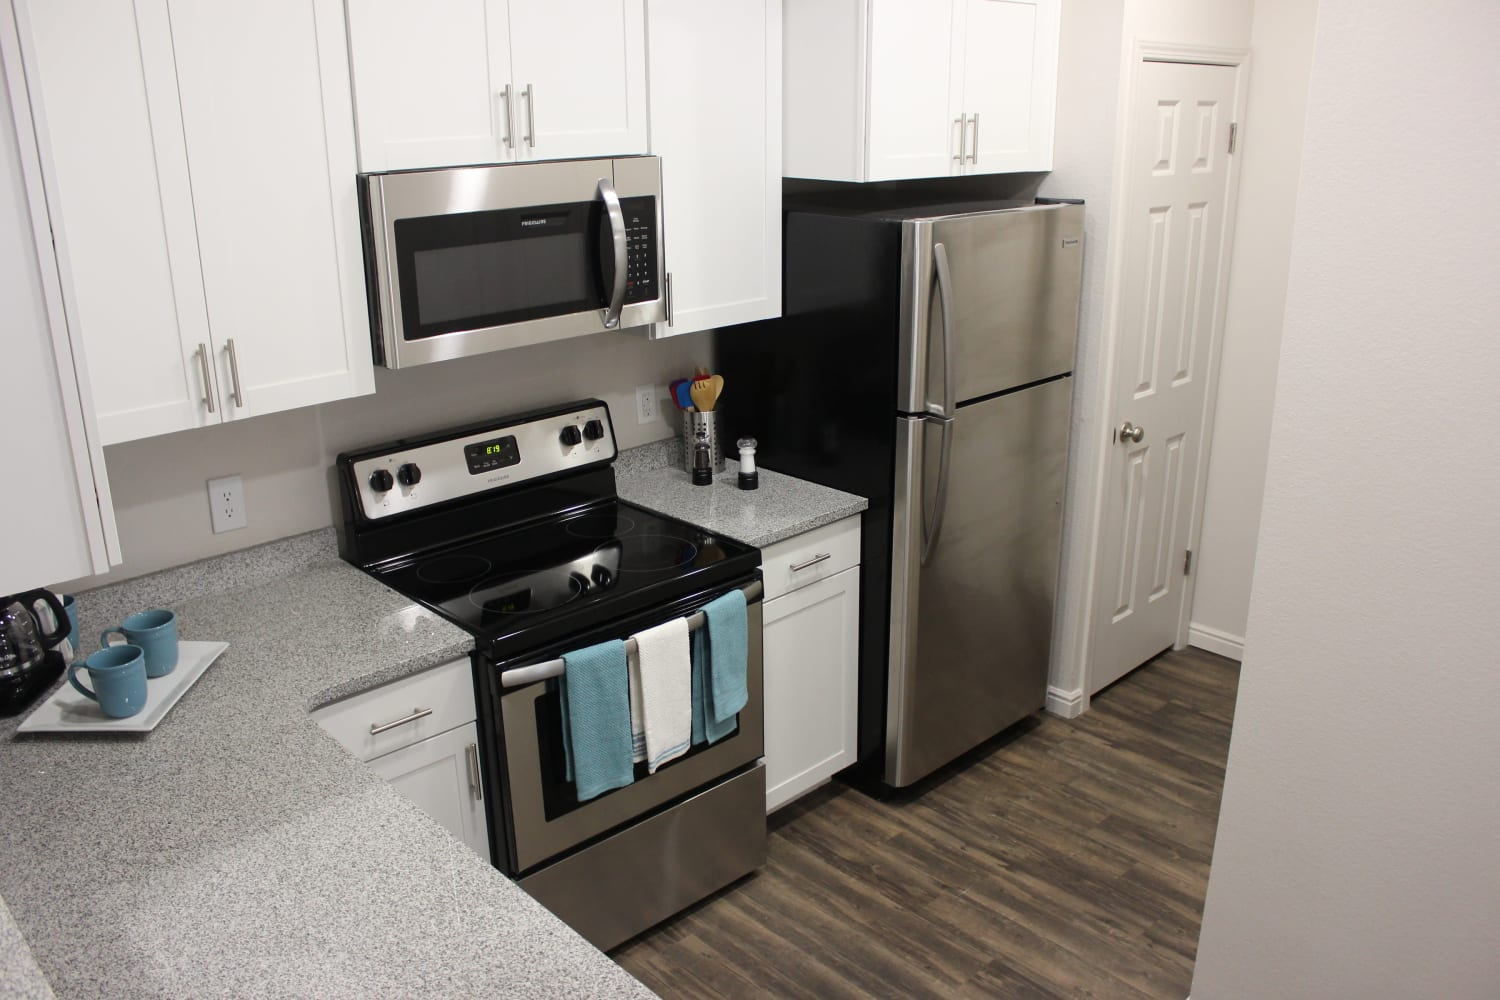 Bright, clean kitchen at Irving Schoolhouse Apartments in Salt Lake City, Utah